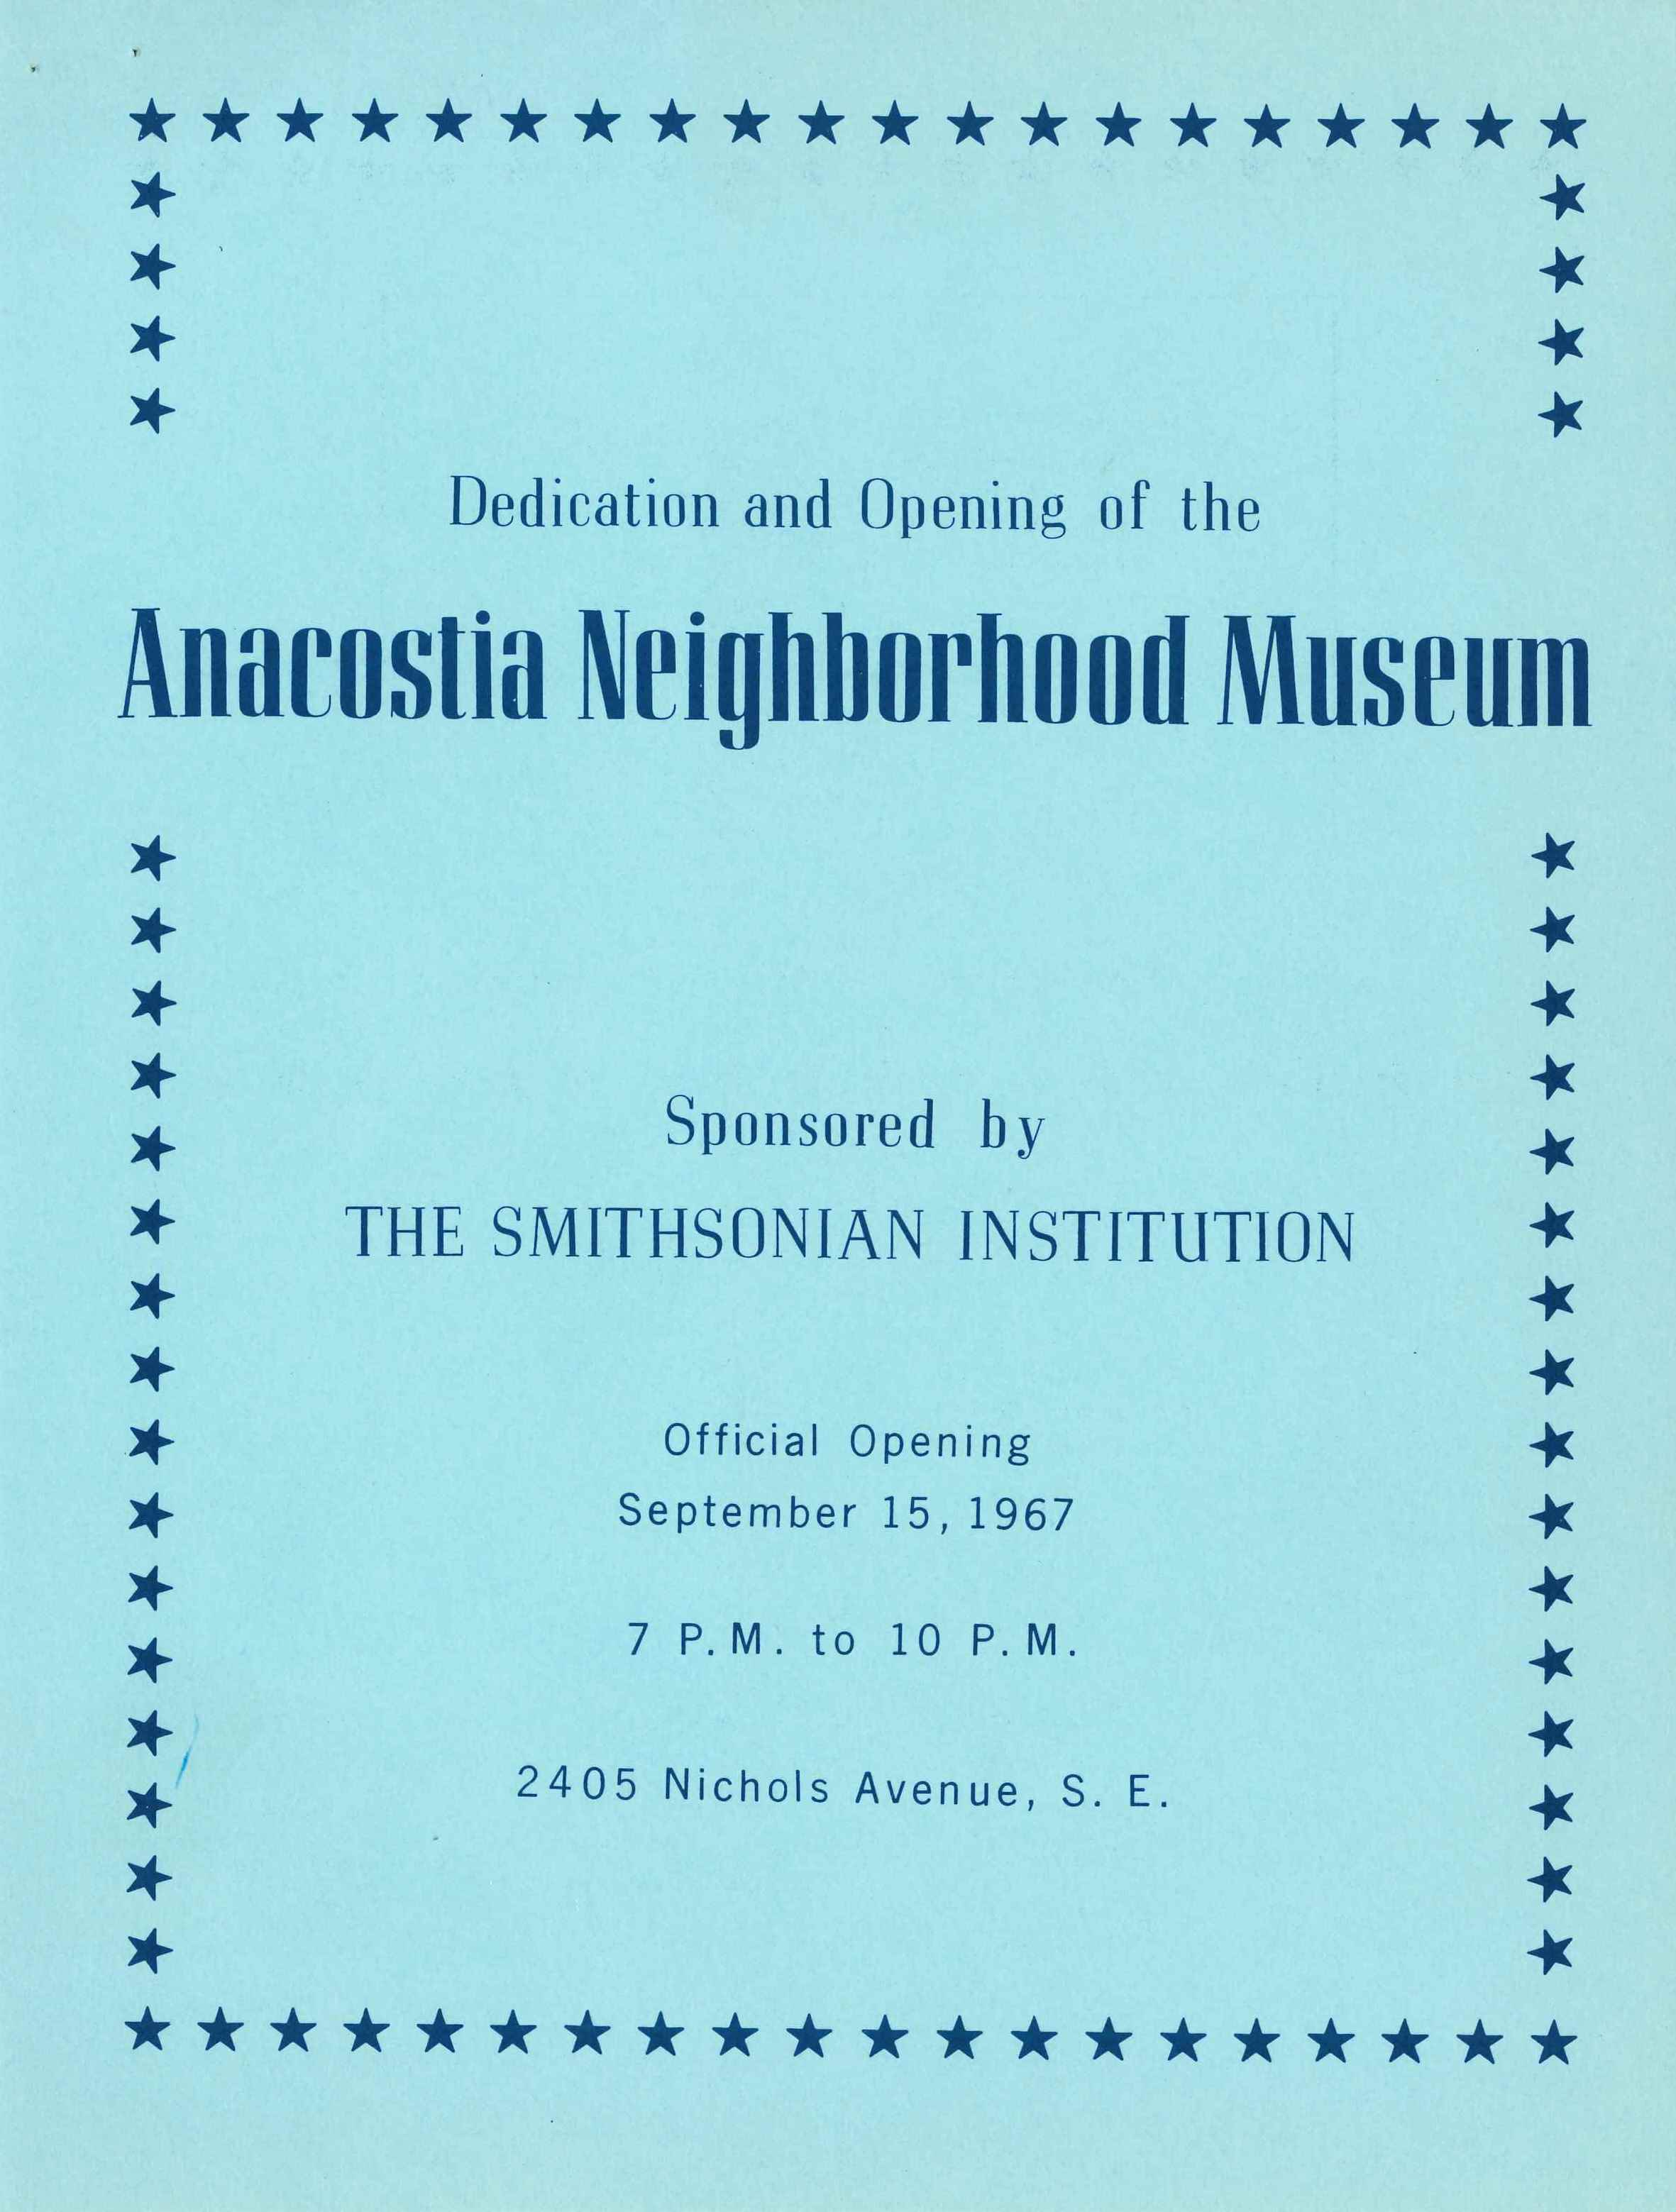 Program for the opening of the Anacostia Neighborhood Museum on September 15, 1967.